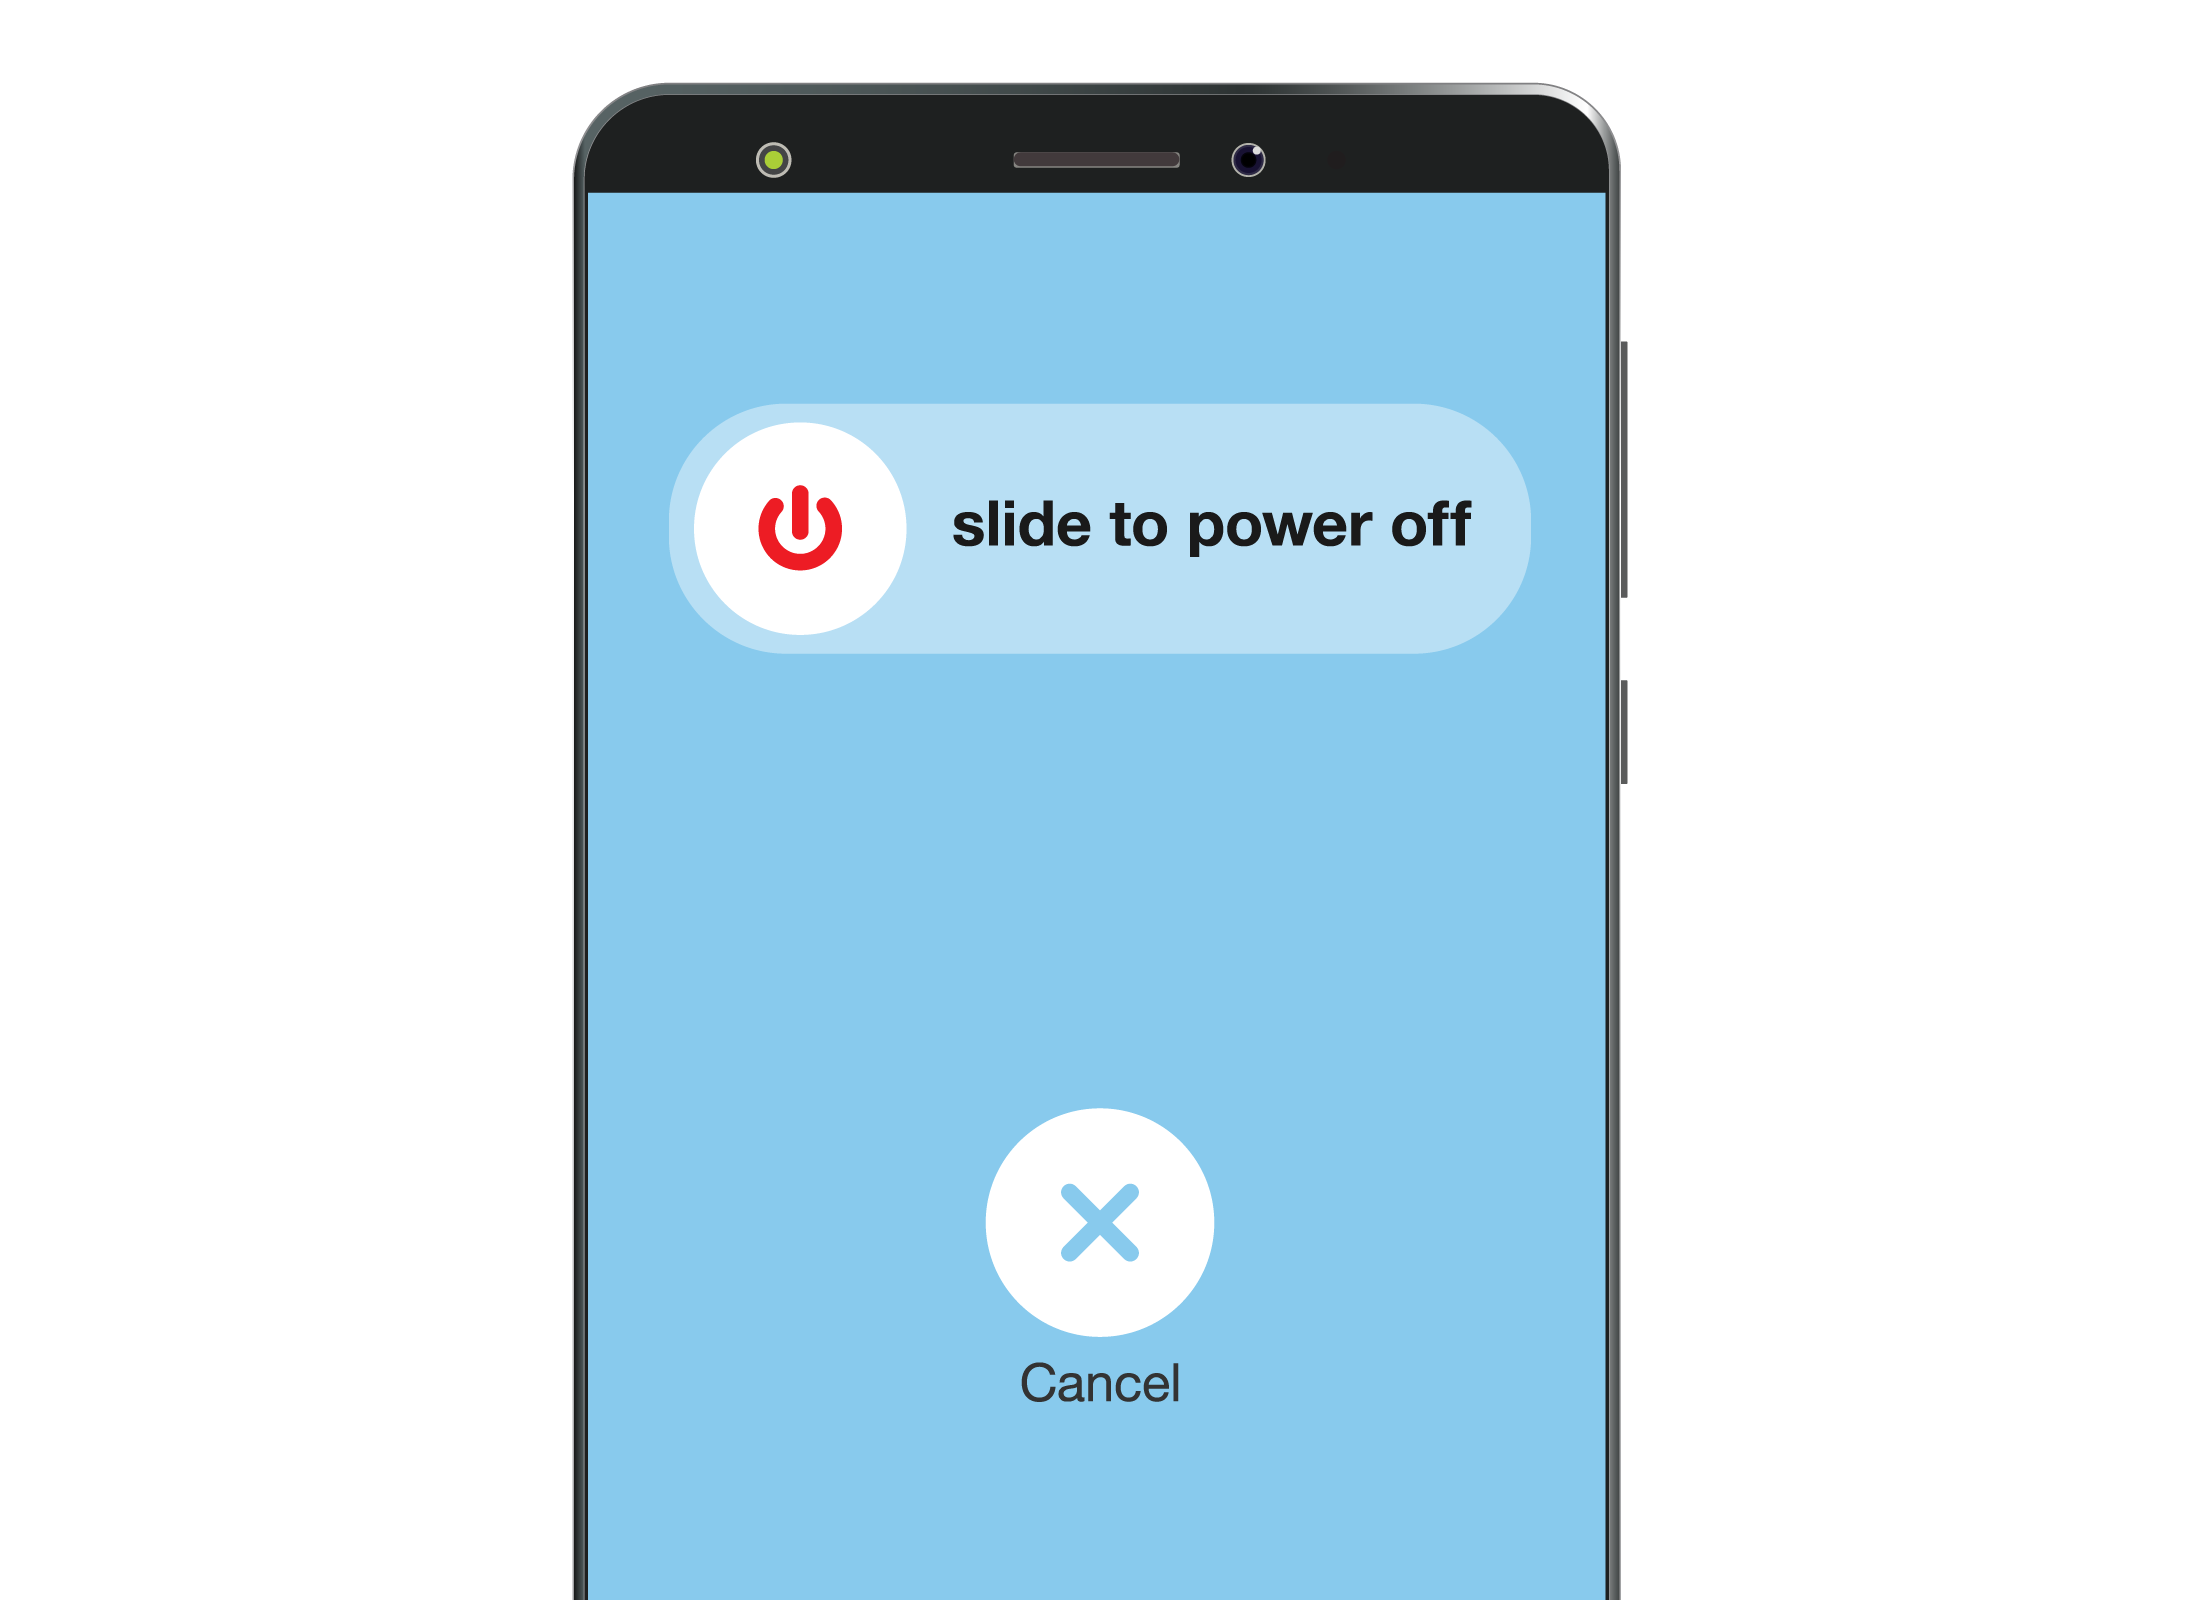 The 'slide to power off' switch displayed on a smartphone screen